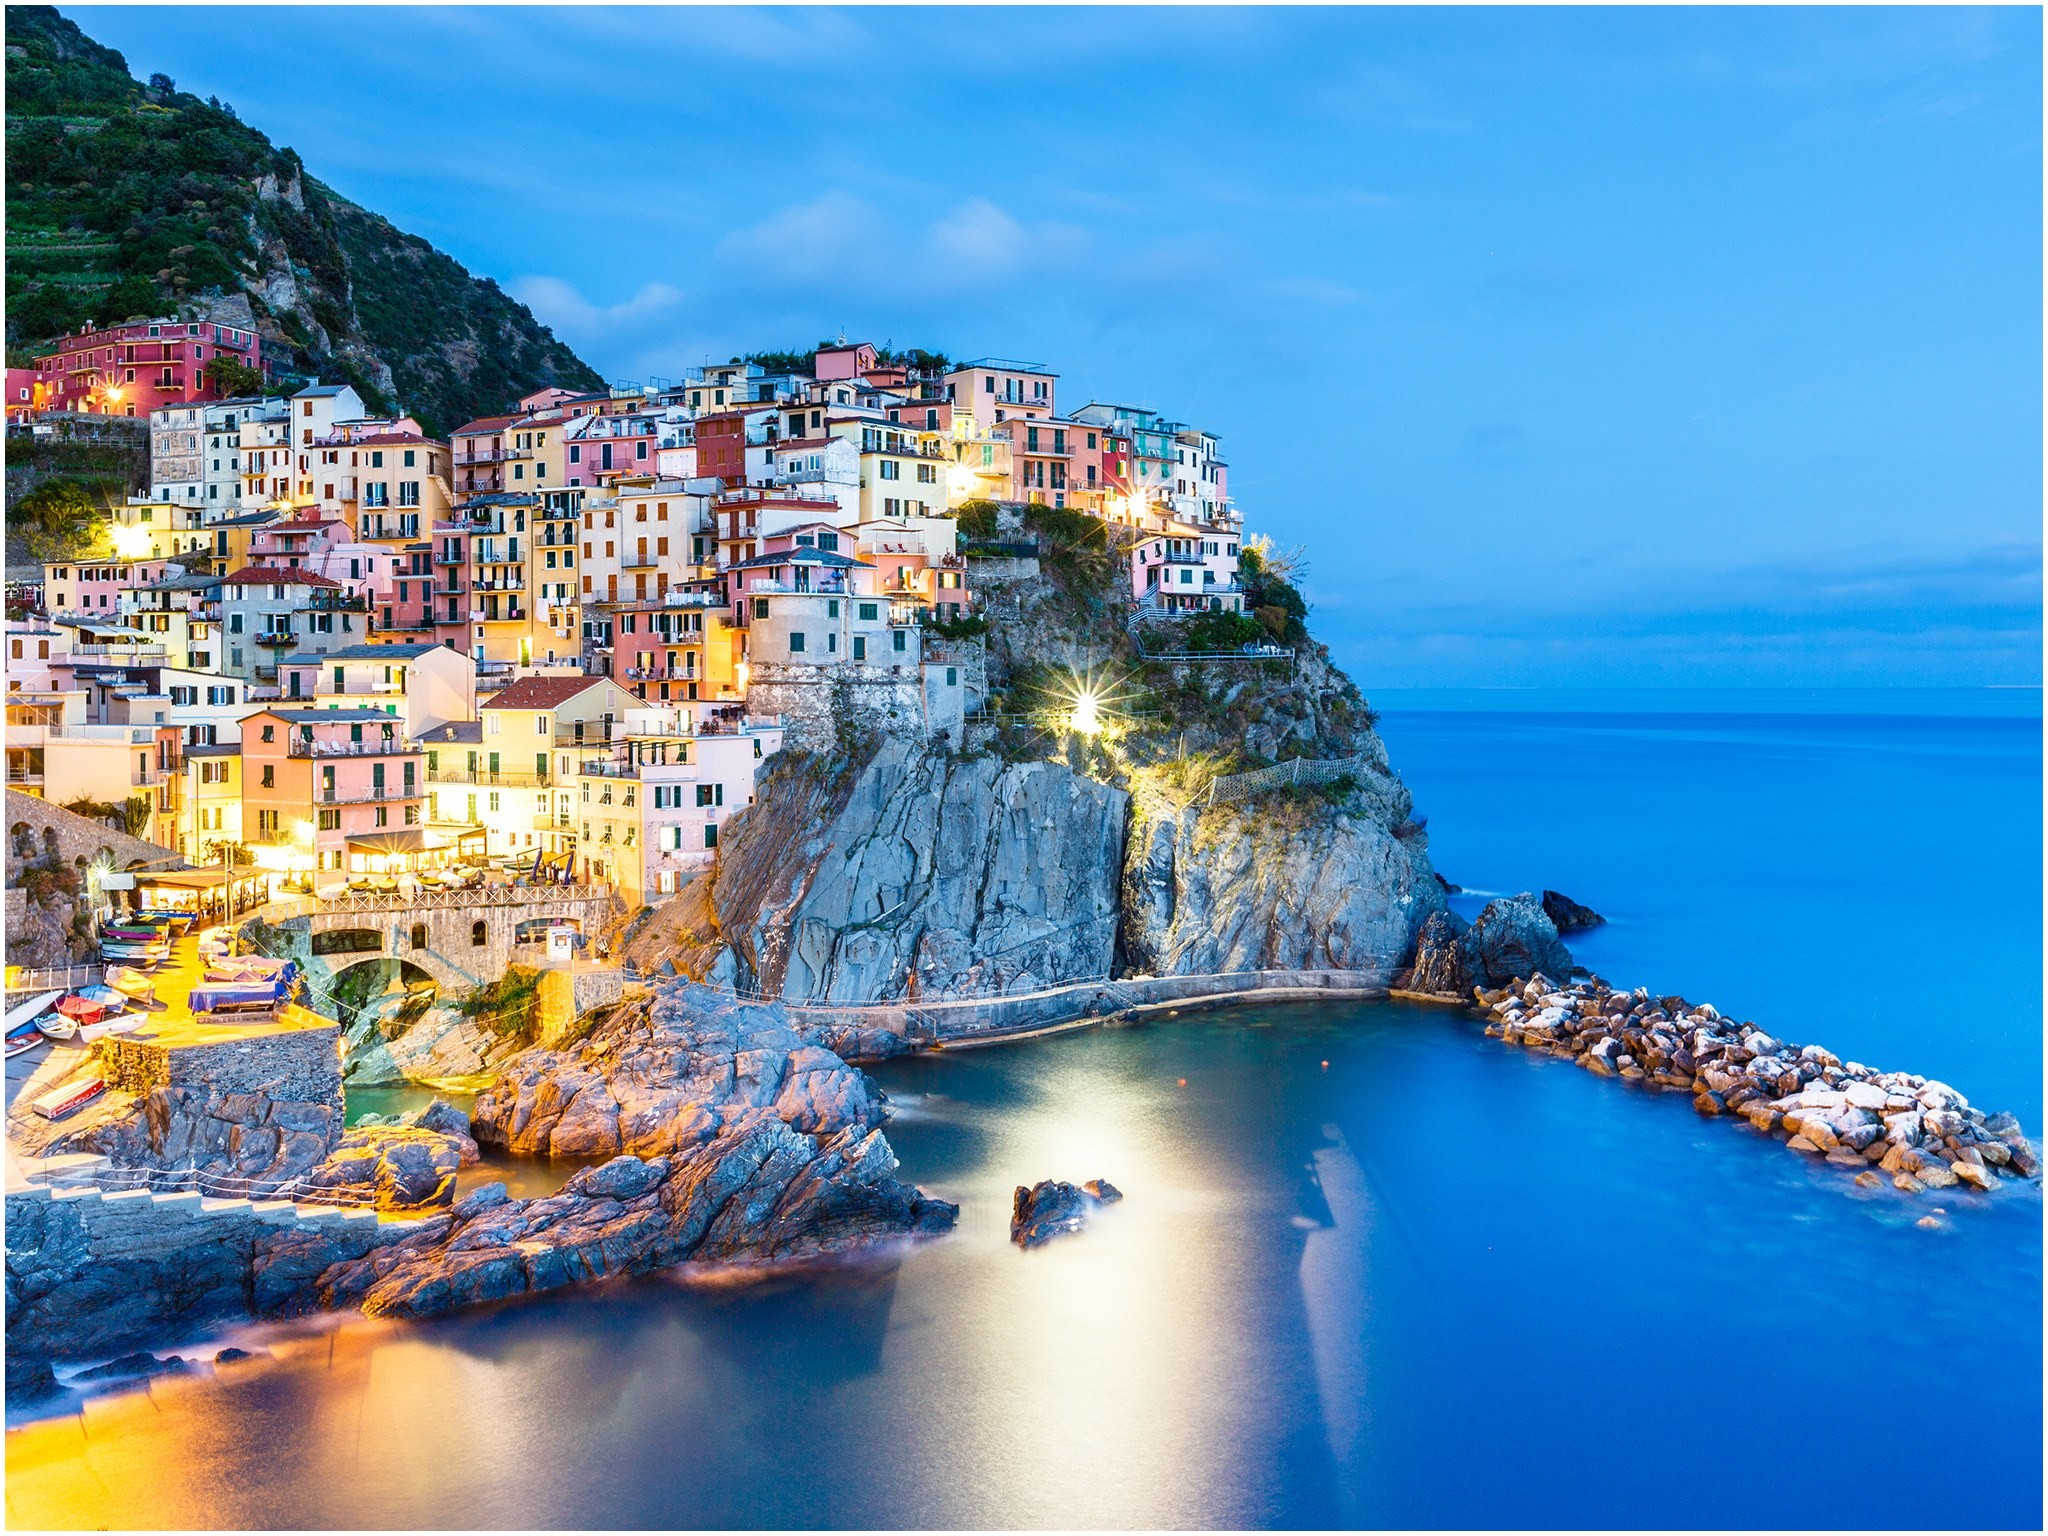 The Most Beautiful Places in Italy - Photos - Condé Nast